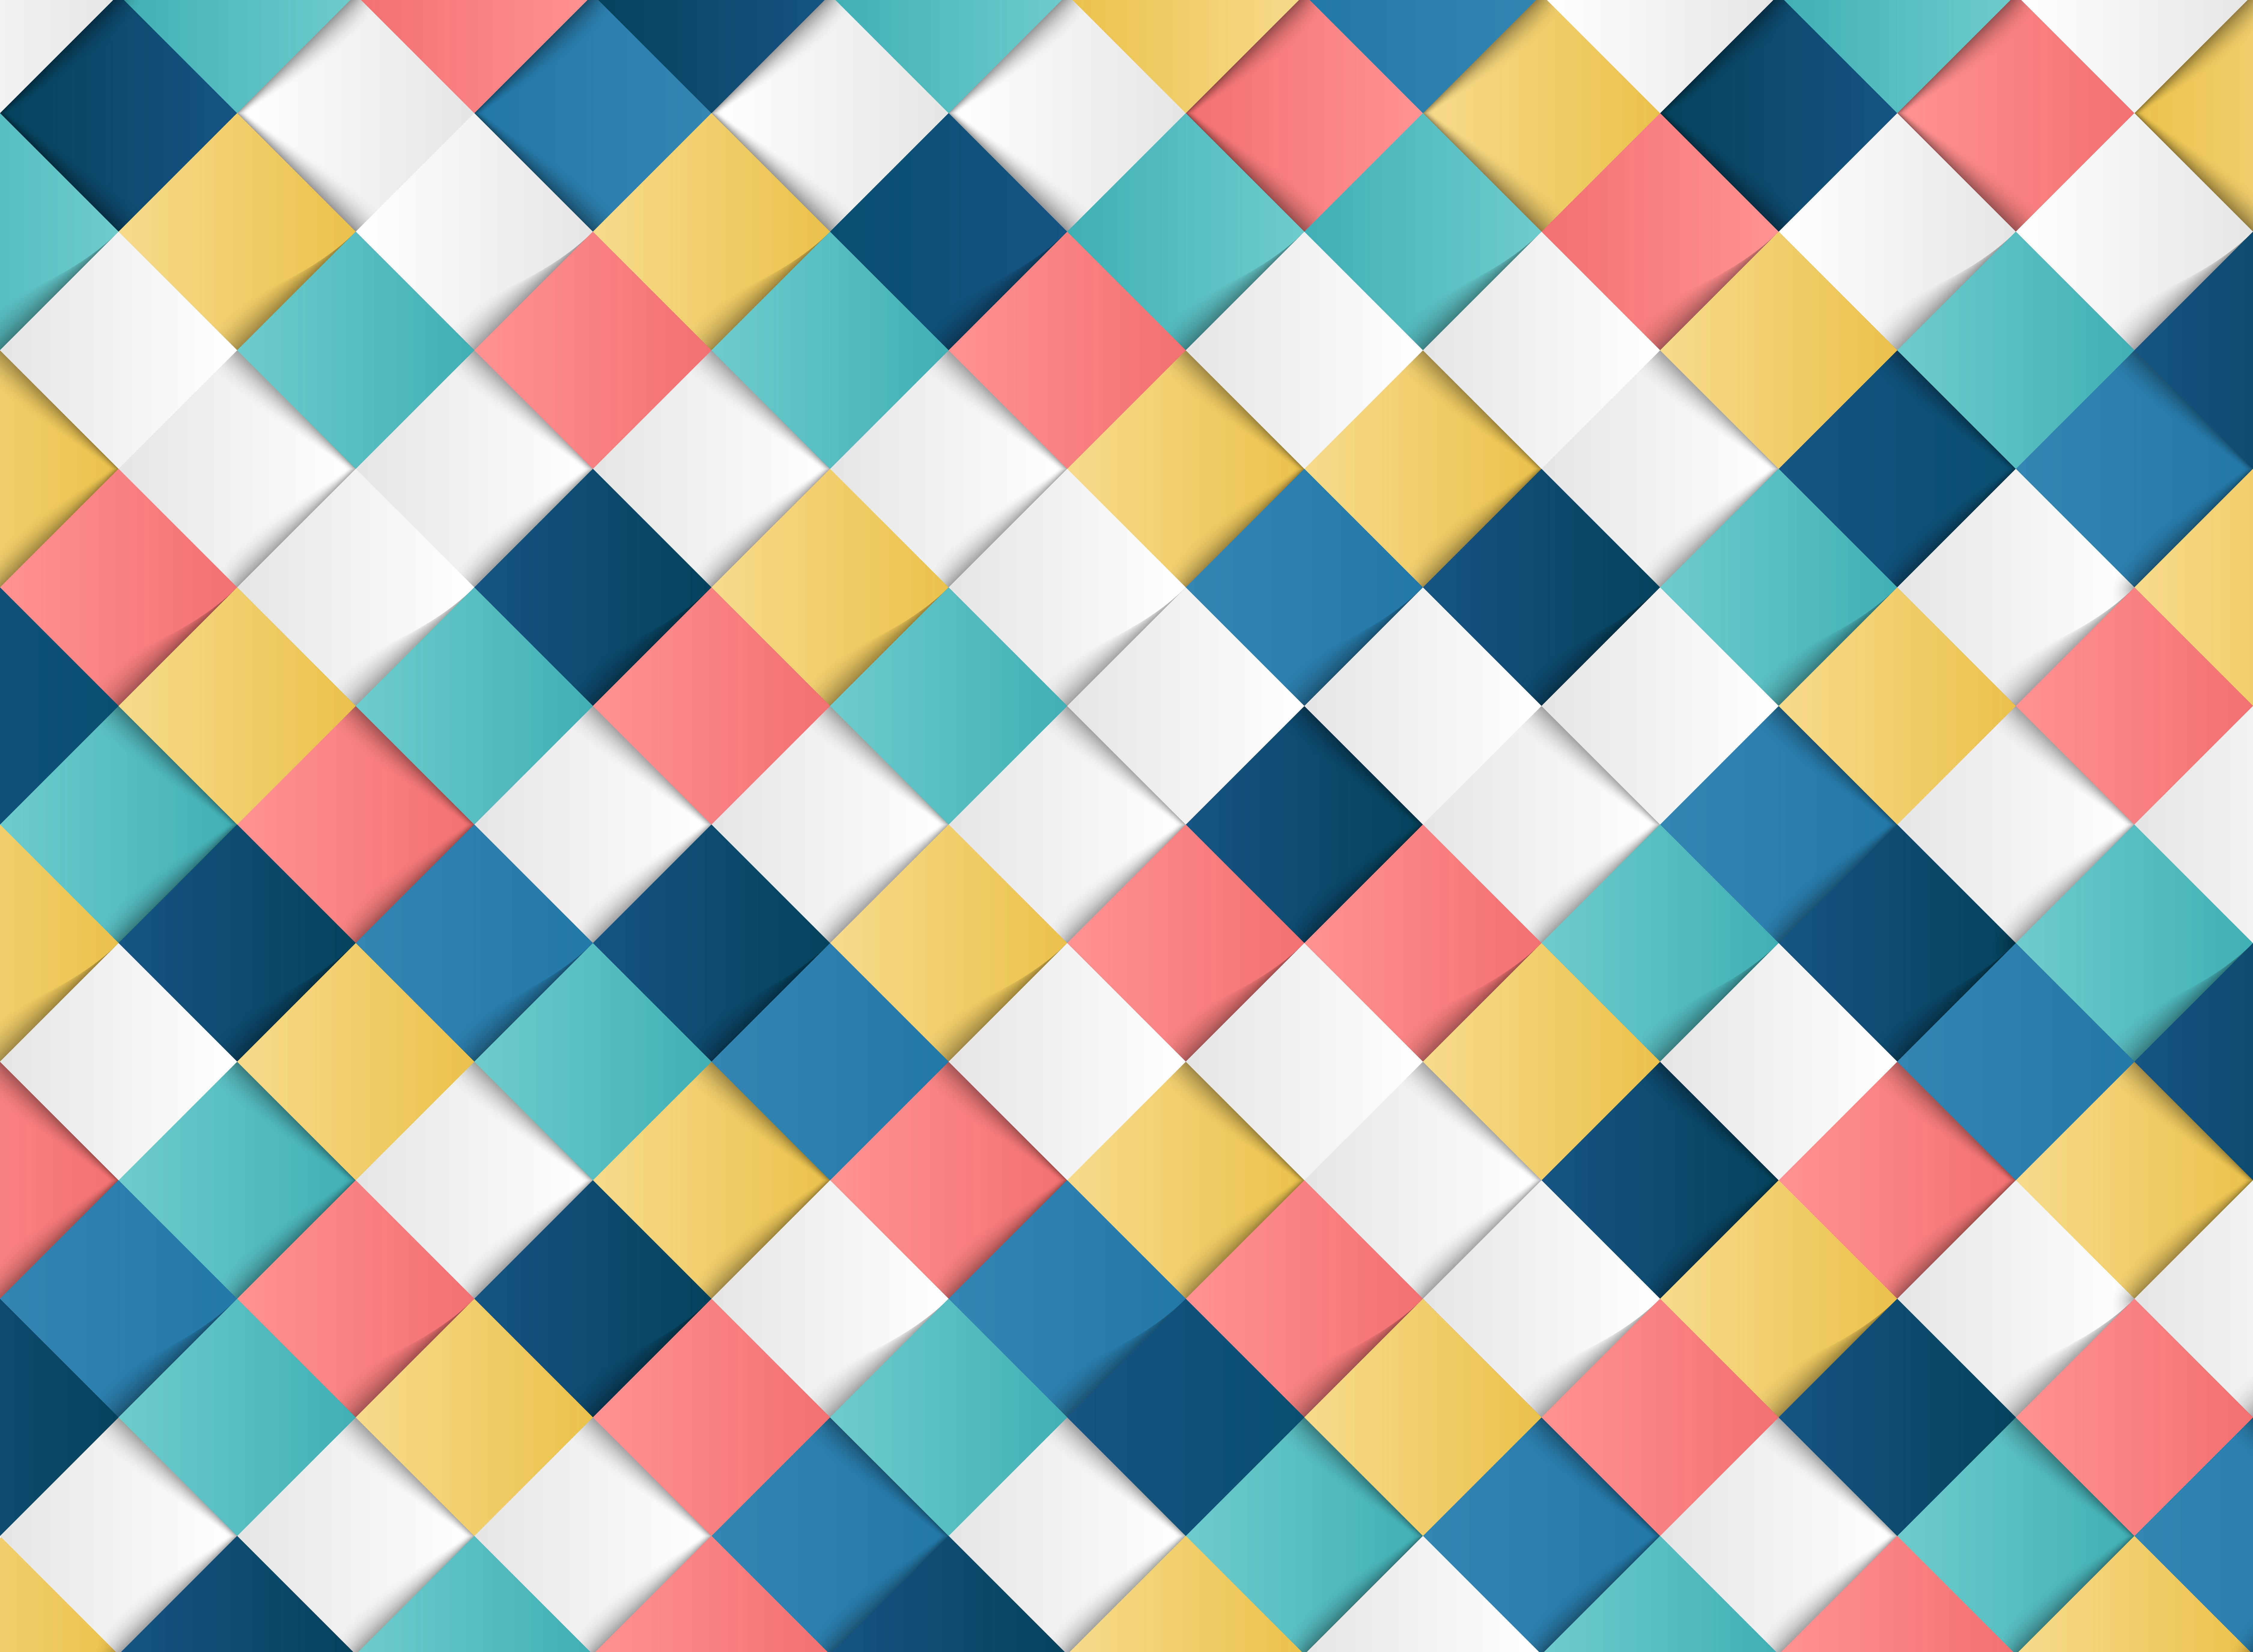 Abstract Colorful Square Geometric Pattern Design Paper